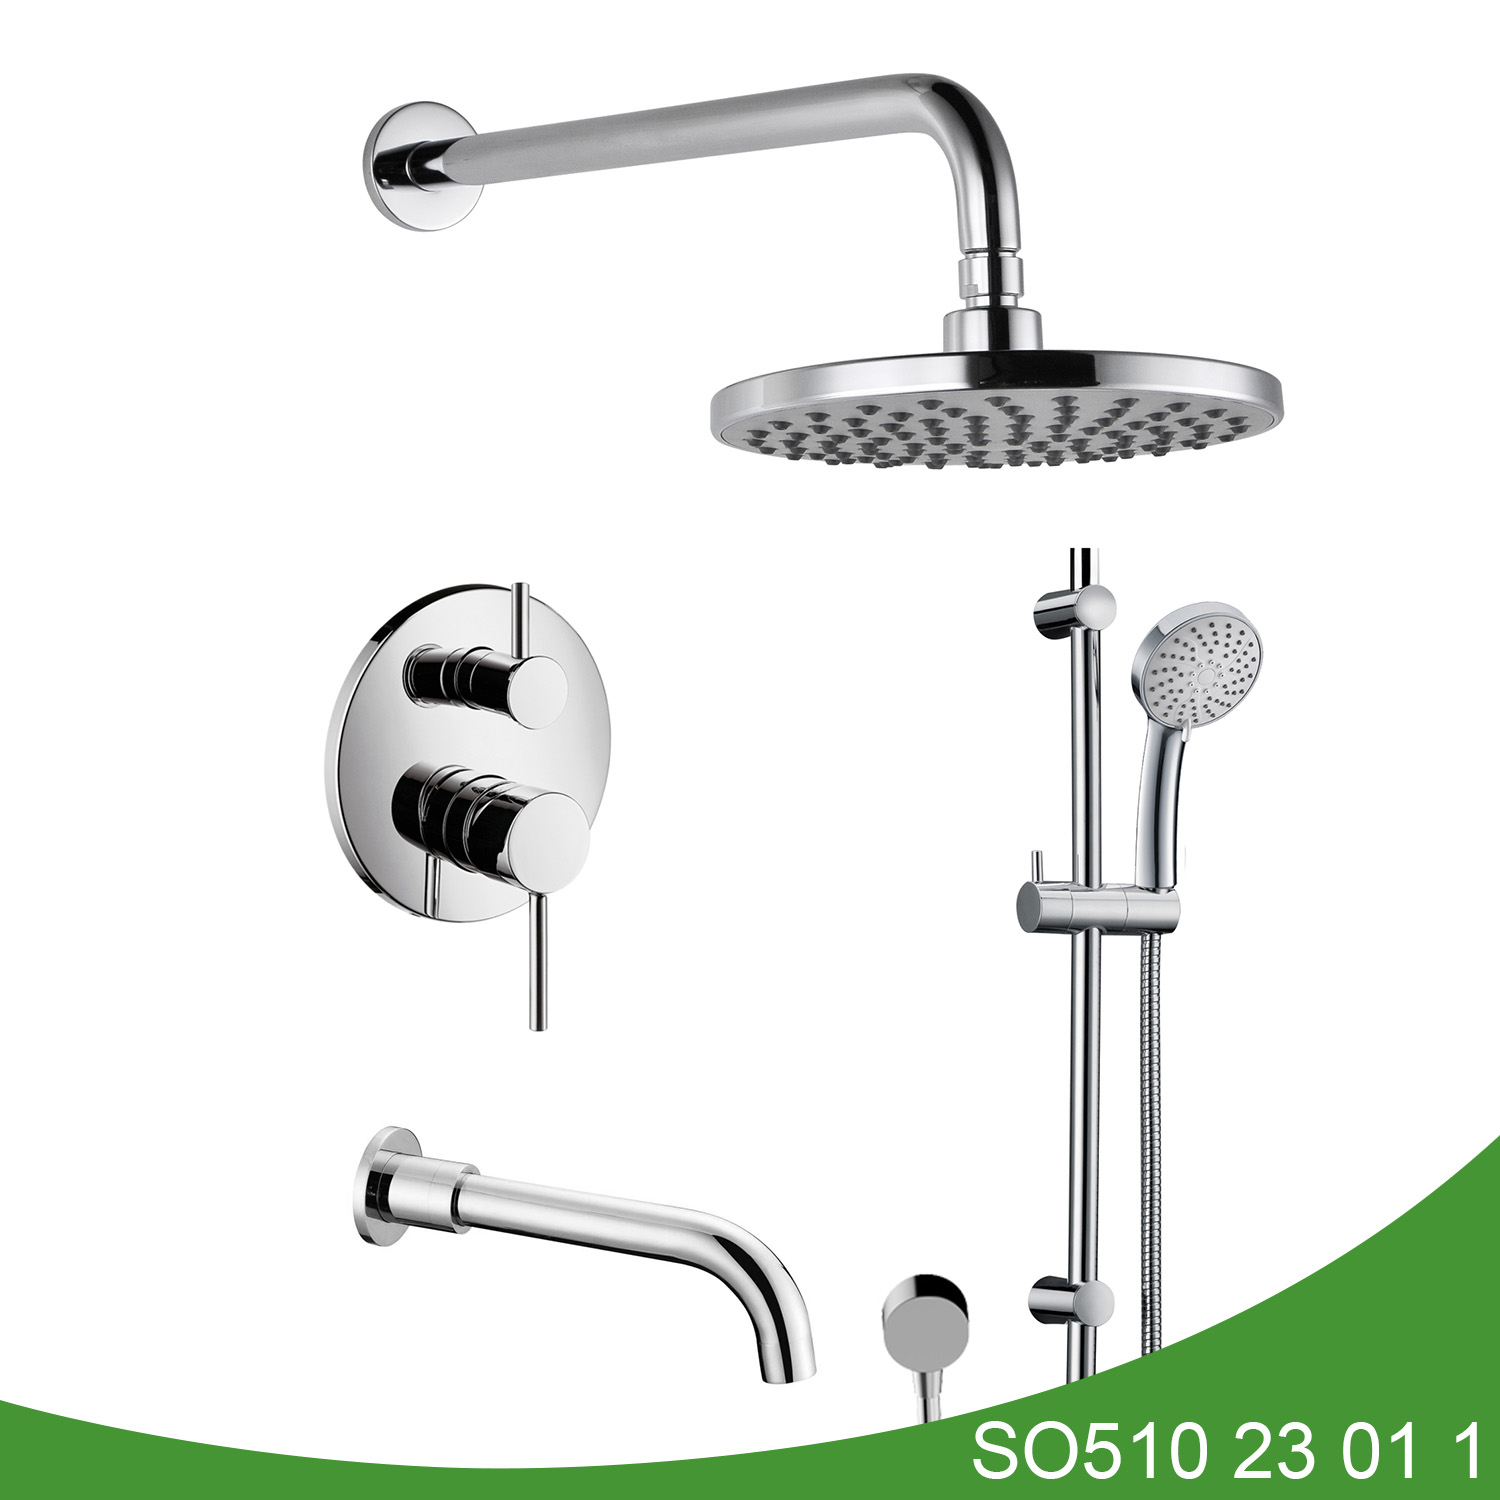 Hot and cold shower set SO510 23 01 1